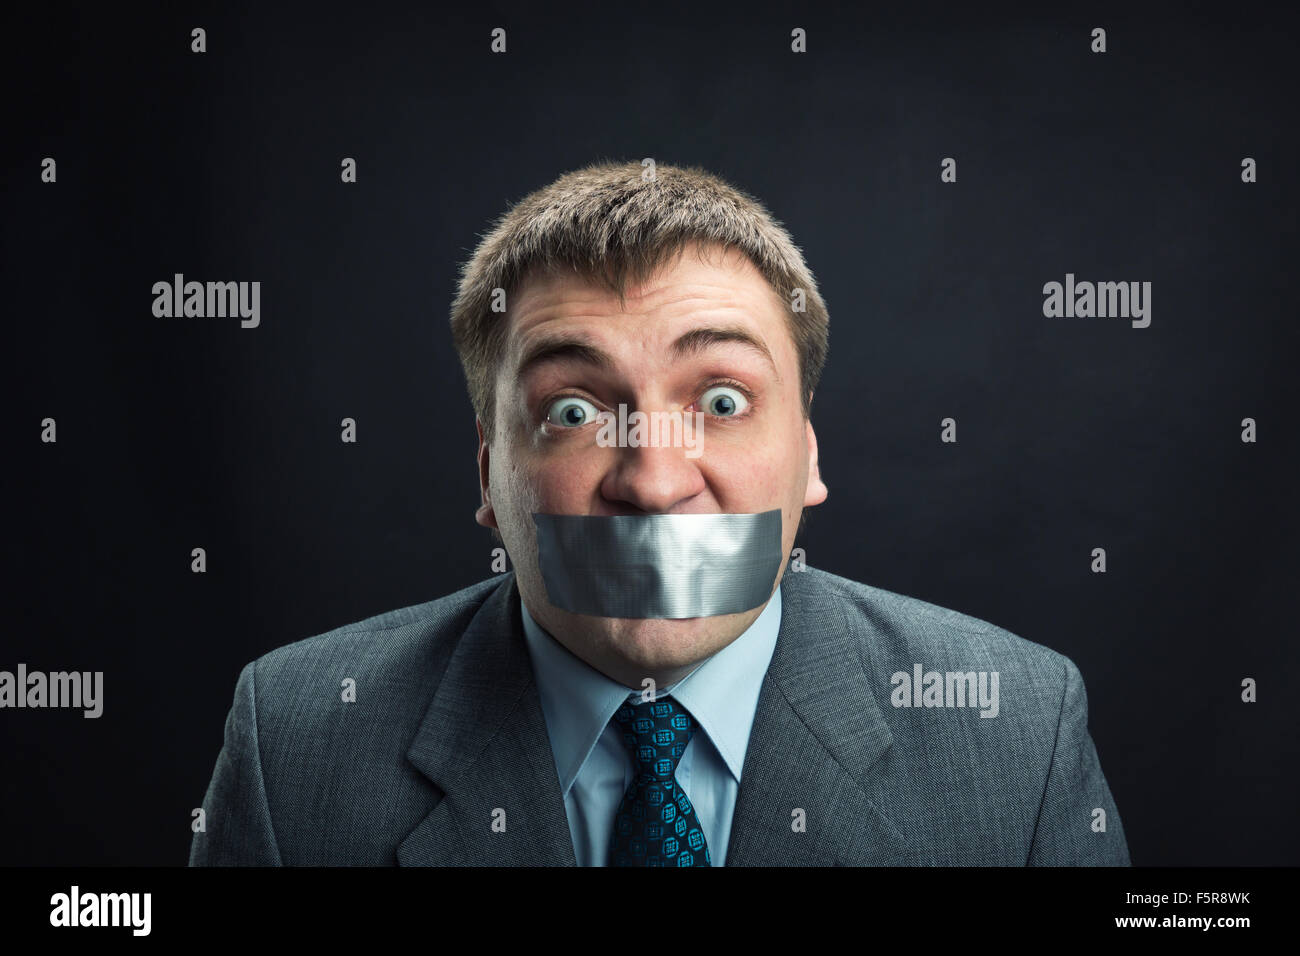 Young man with mouth covered by masking tape preventing speech, studio shoot - Stock Image